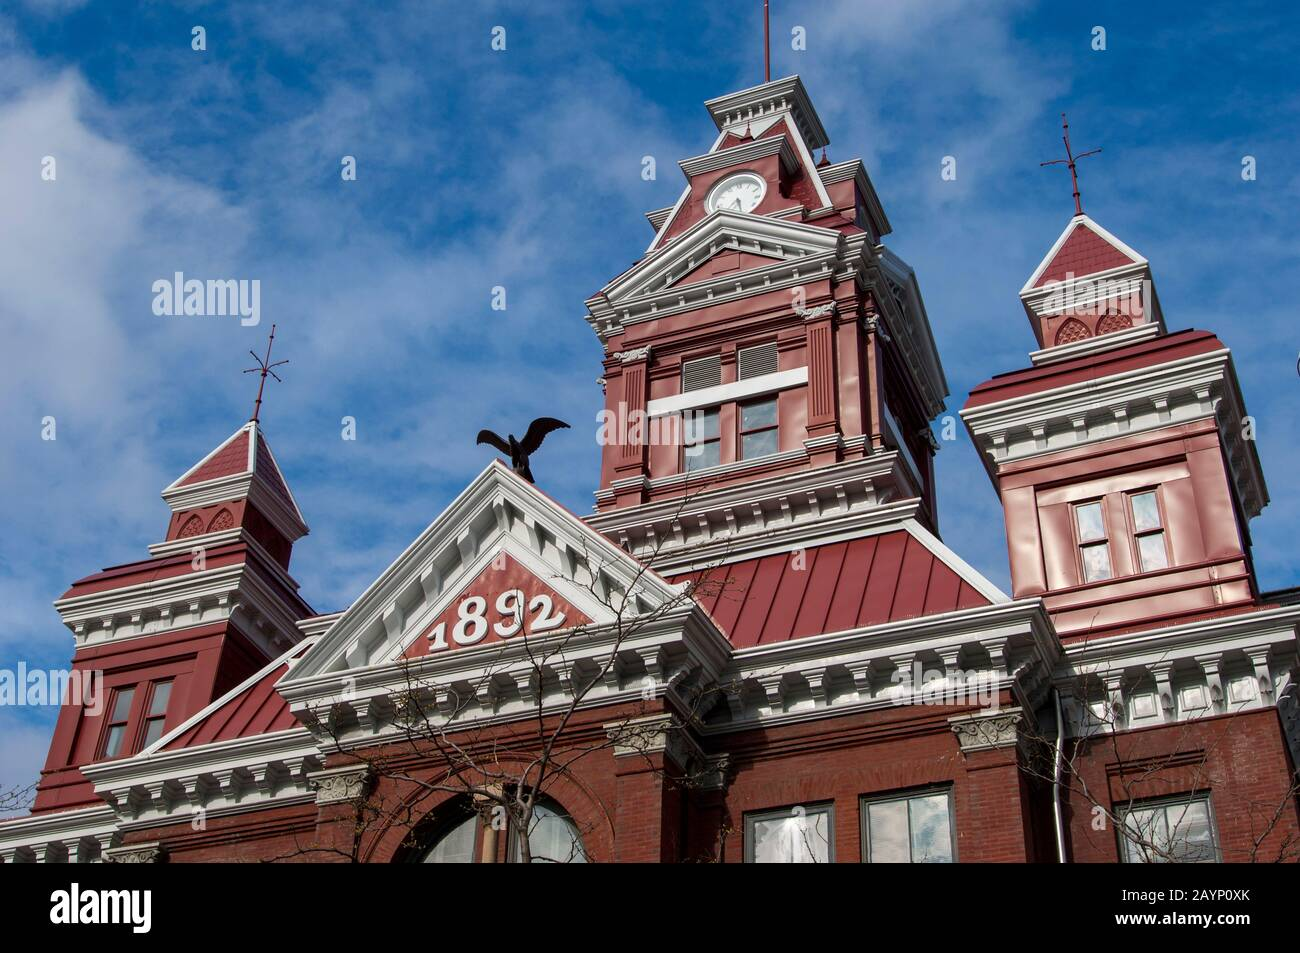 Detail of the architecture of old City Hall, now the Whatcom Museum of History and Art in Bellingham in Whatcam County, Washington State, USA. Stock Photo